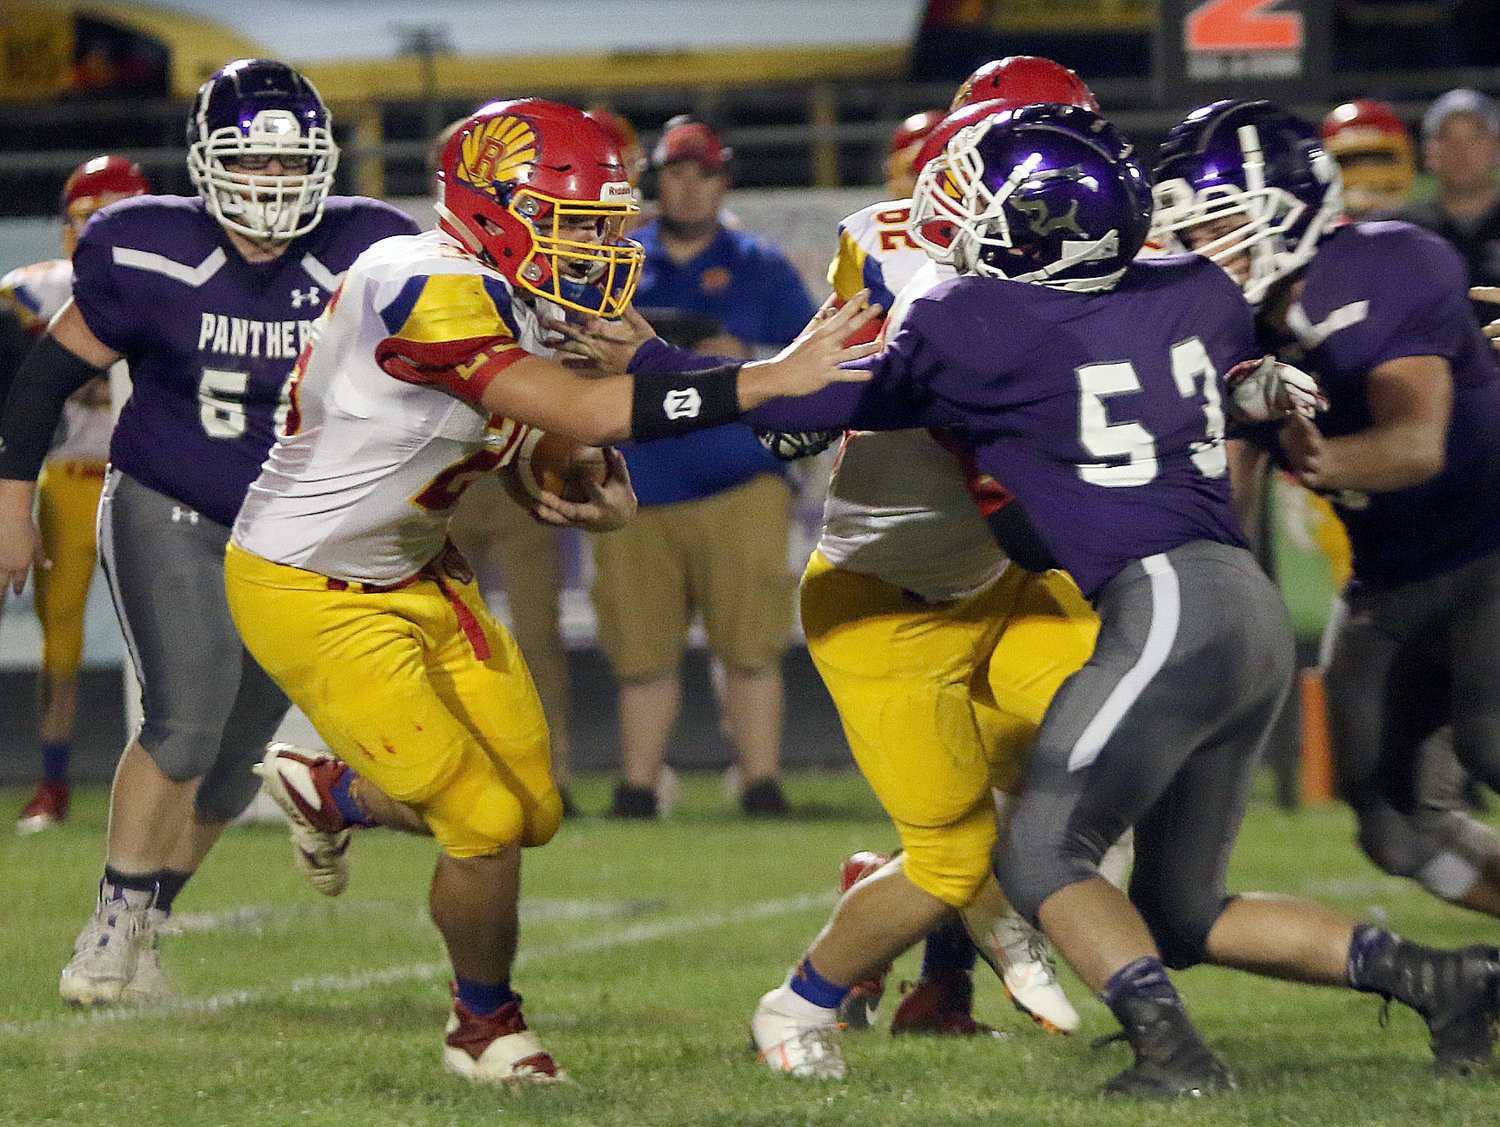 Litchfield's Hunter Niemann (53) tries to break free from his blocker to bring down Roxana's David Pluester during the Panthers' homecoming game on Friday, Oct. 4. The Shells would score 33 points in the first quarter en route to a 47-14 victory in Litchfield.